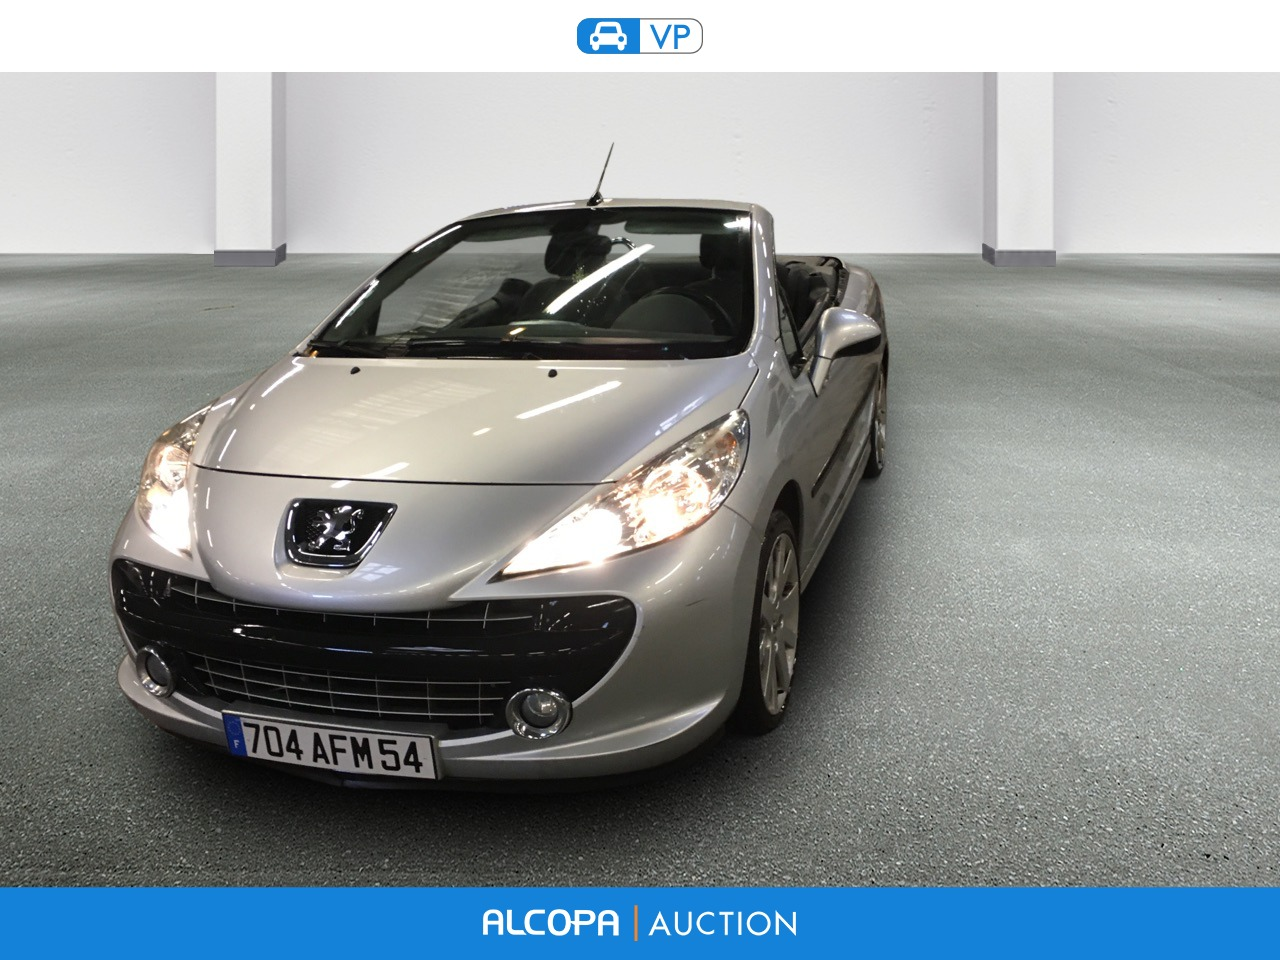 peugeot 207 cc 1 6 vti 16v 120ch sport pack a alcopa auction. Black Bedroom Furniture Sets. Home Design Ideas